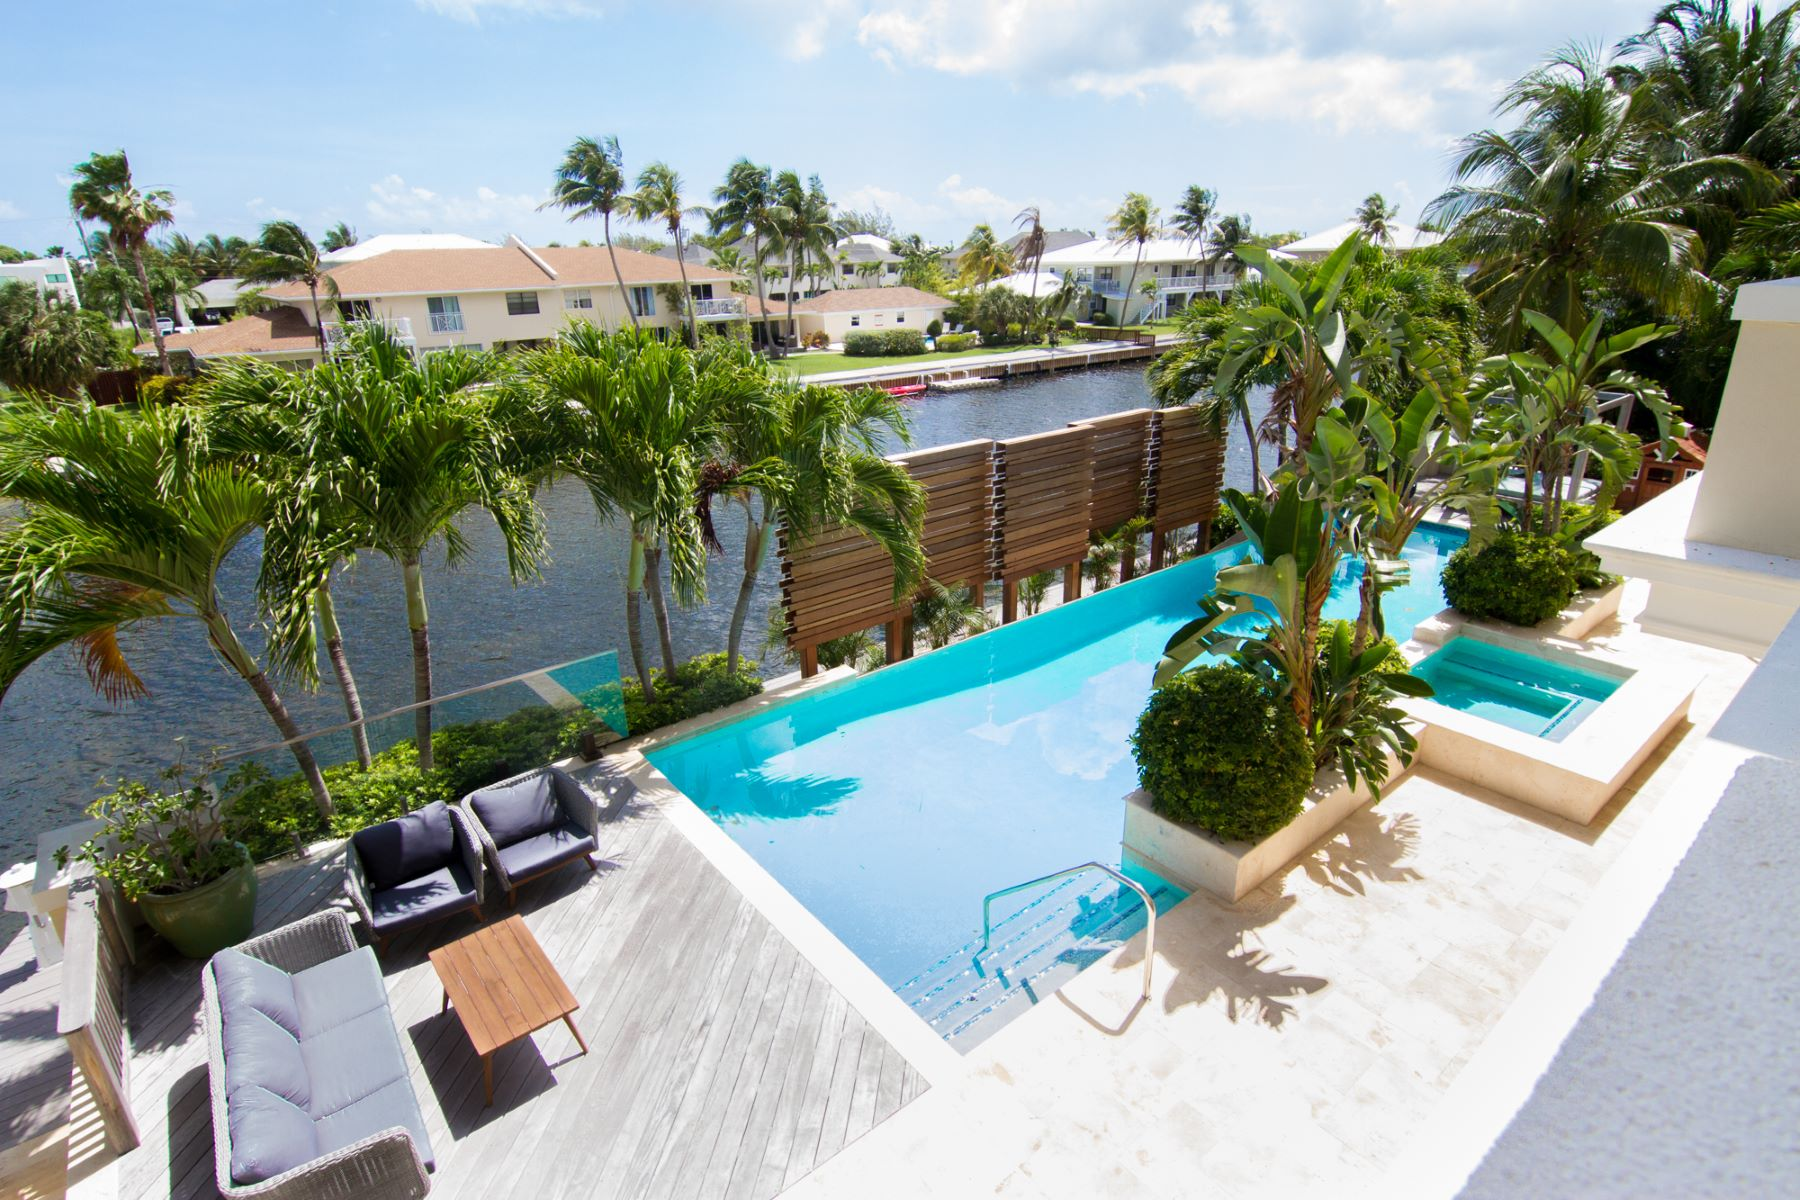 Single Family Home for Sale at Mayfair By The Sea Britannia, Cayman Islands